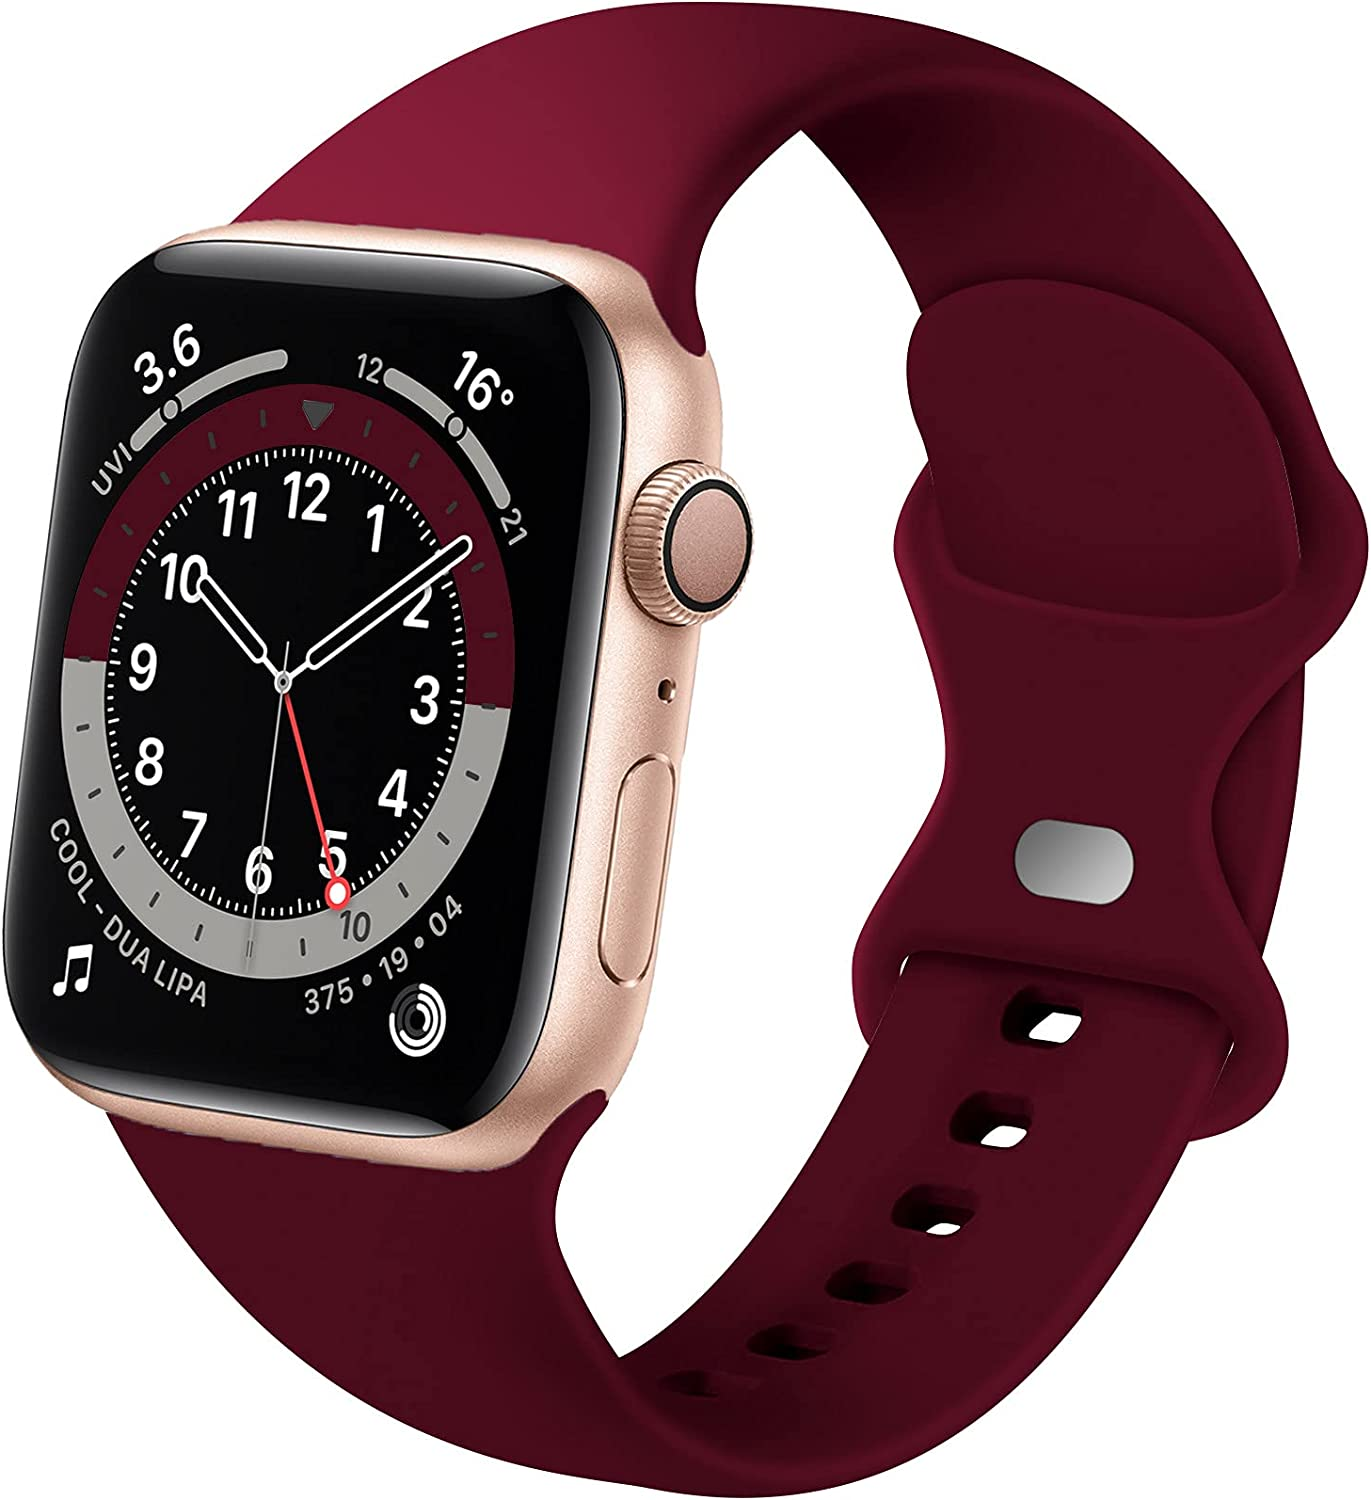 Distore Bands Compatible with Apple Watch 38mm 40mm 42mm 44mm, Soft Silicone Replacement Sport Strap for iWatch SE Series 6/5/4/3/2/1 Women Men, Wine Red 38mm/40mm S/M